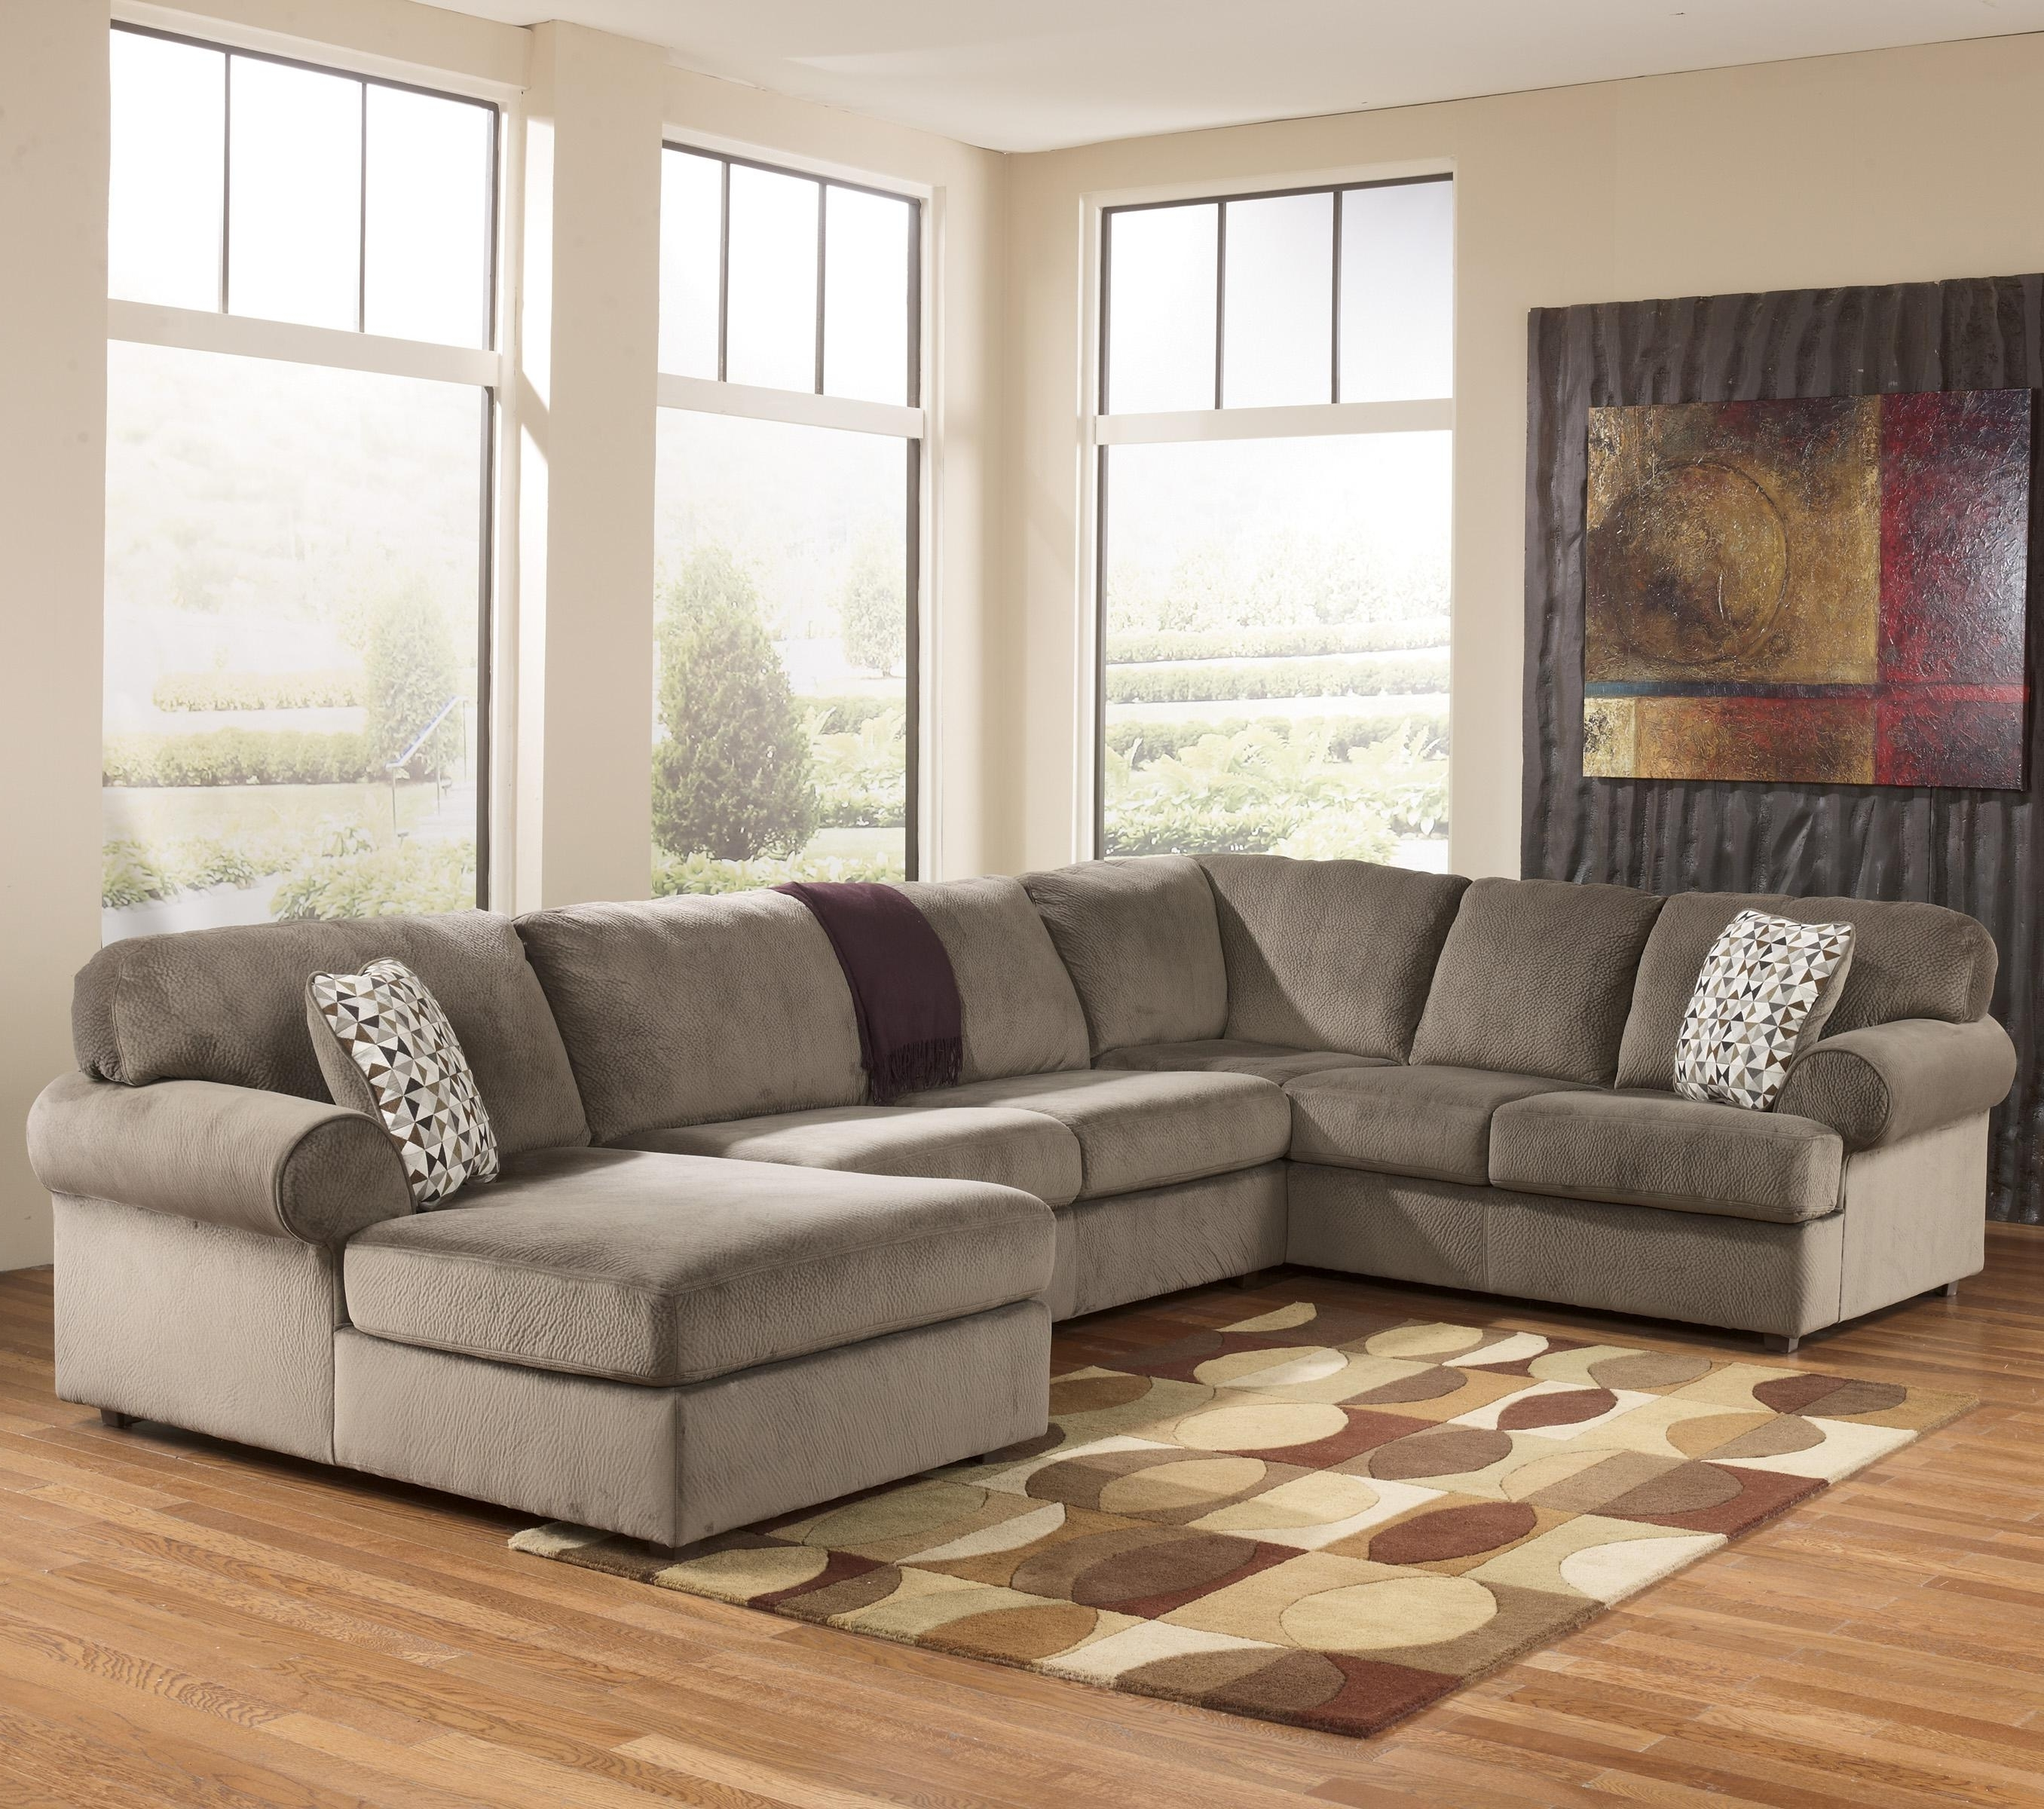 Widely Used Signature Designashley Jessa Place – Dune Casual Sectional With Regard To Jacksonville Nc Sectional Sofas (View 20 of 20)